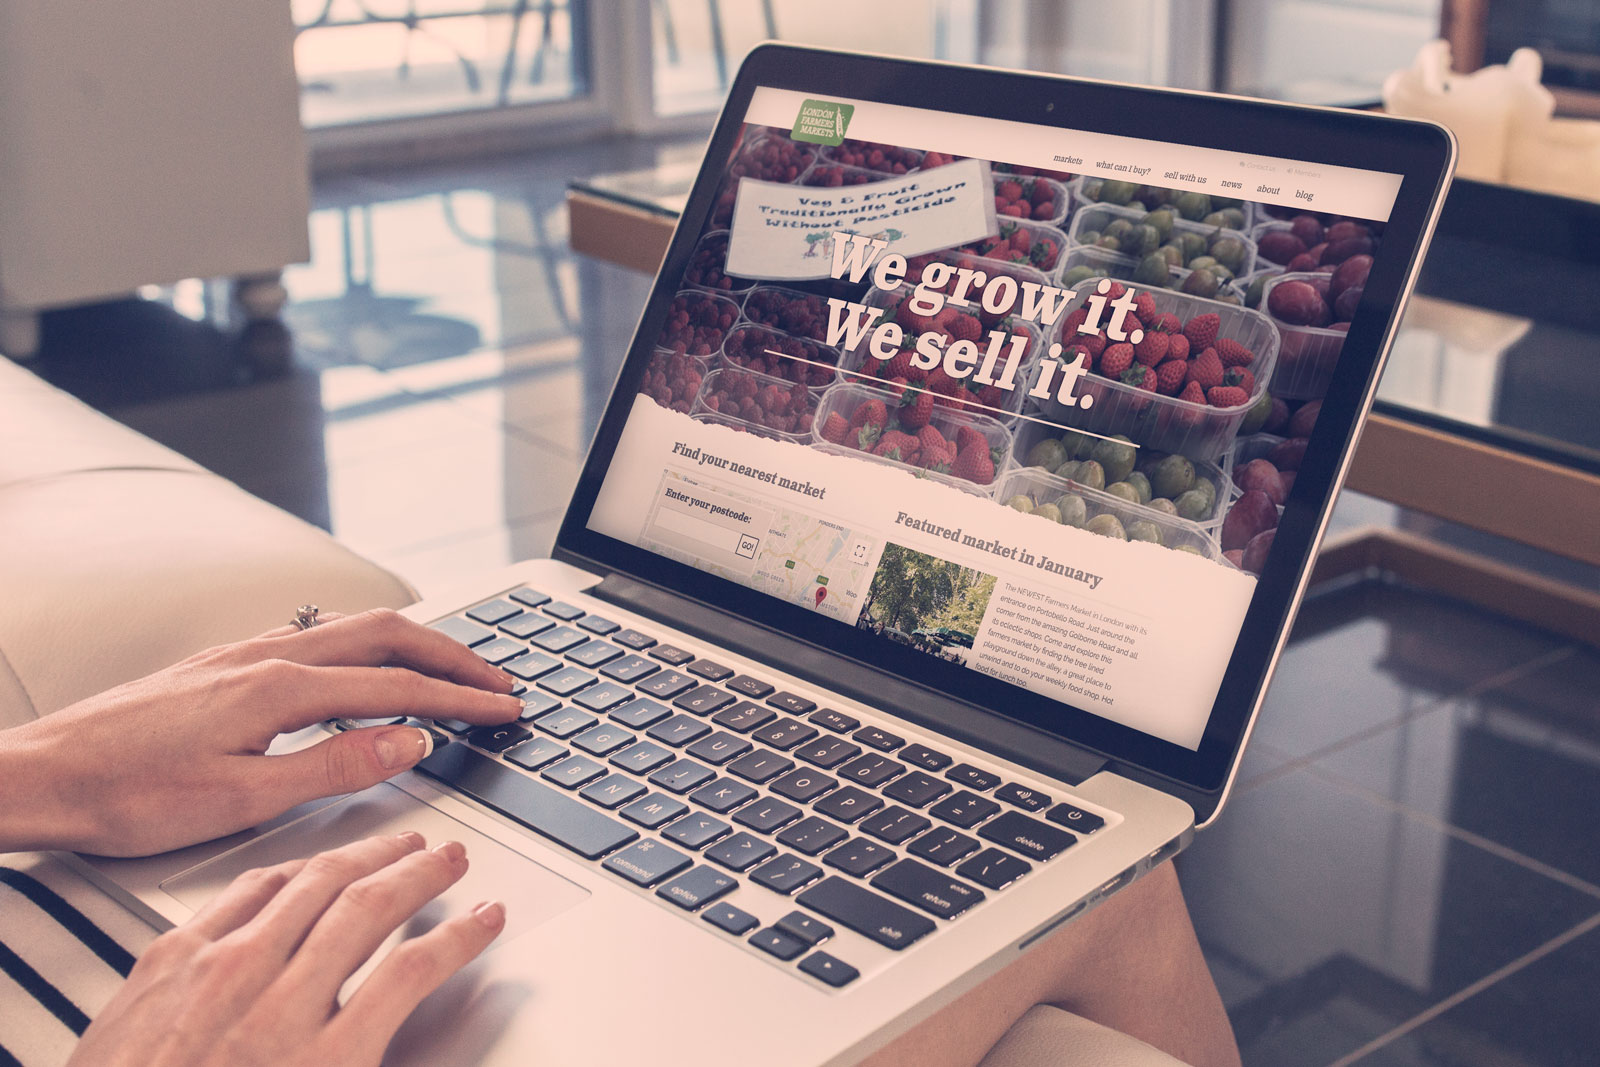 New website and user interface to locate farmers' markets in London